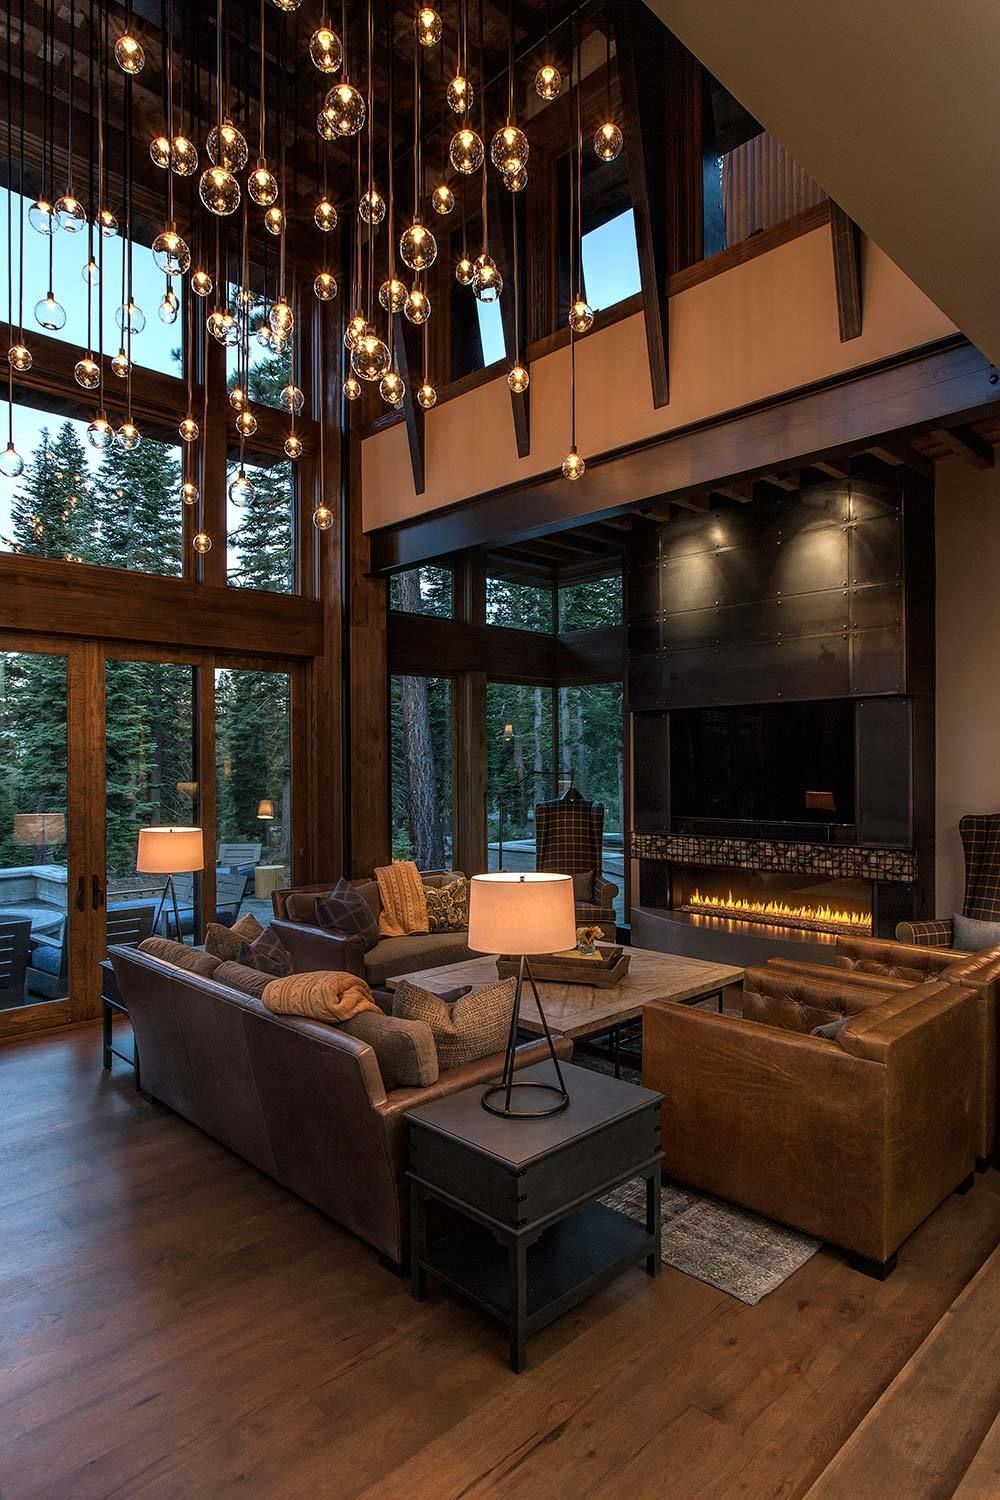 Designed as family getaway by studio interior design this rustic modern home is located in martis